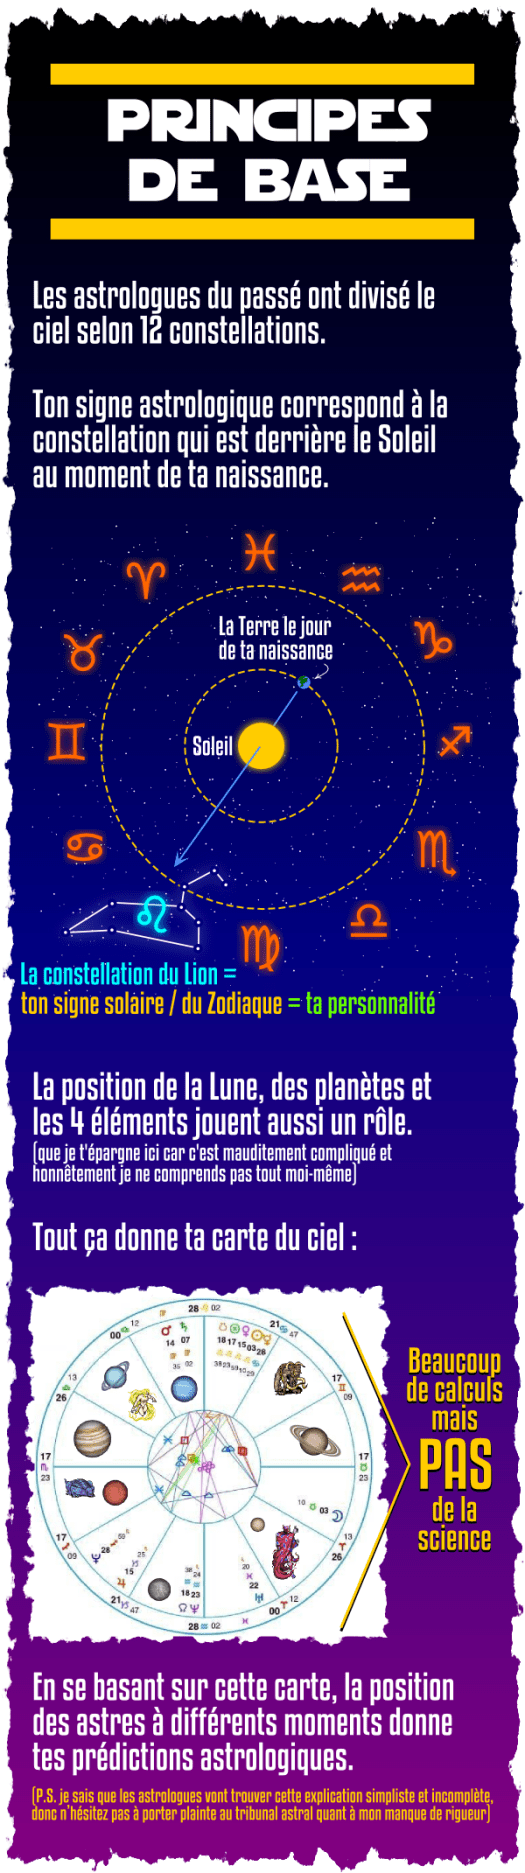 astrologie constellations signe solaire Zodiaque